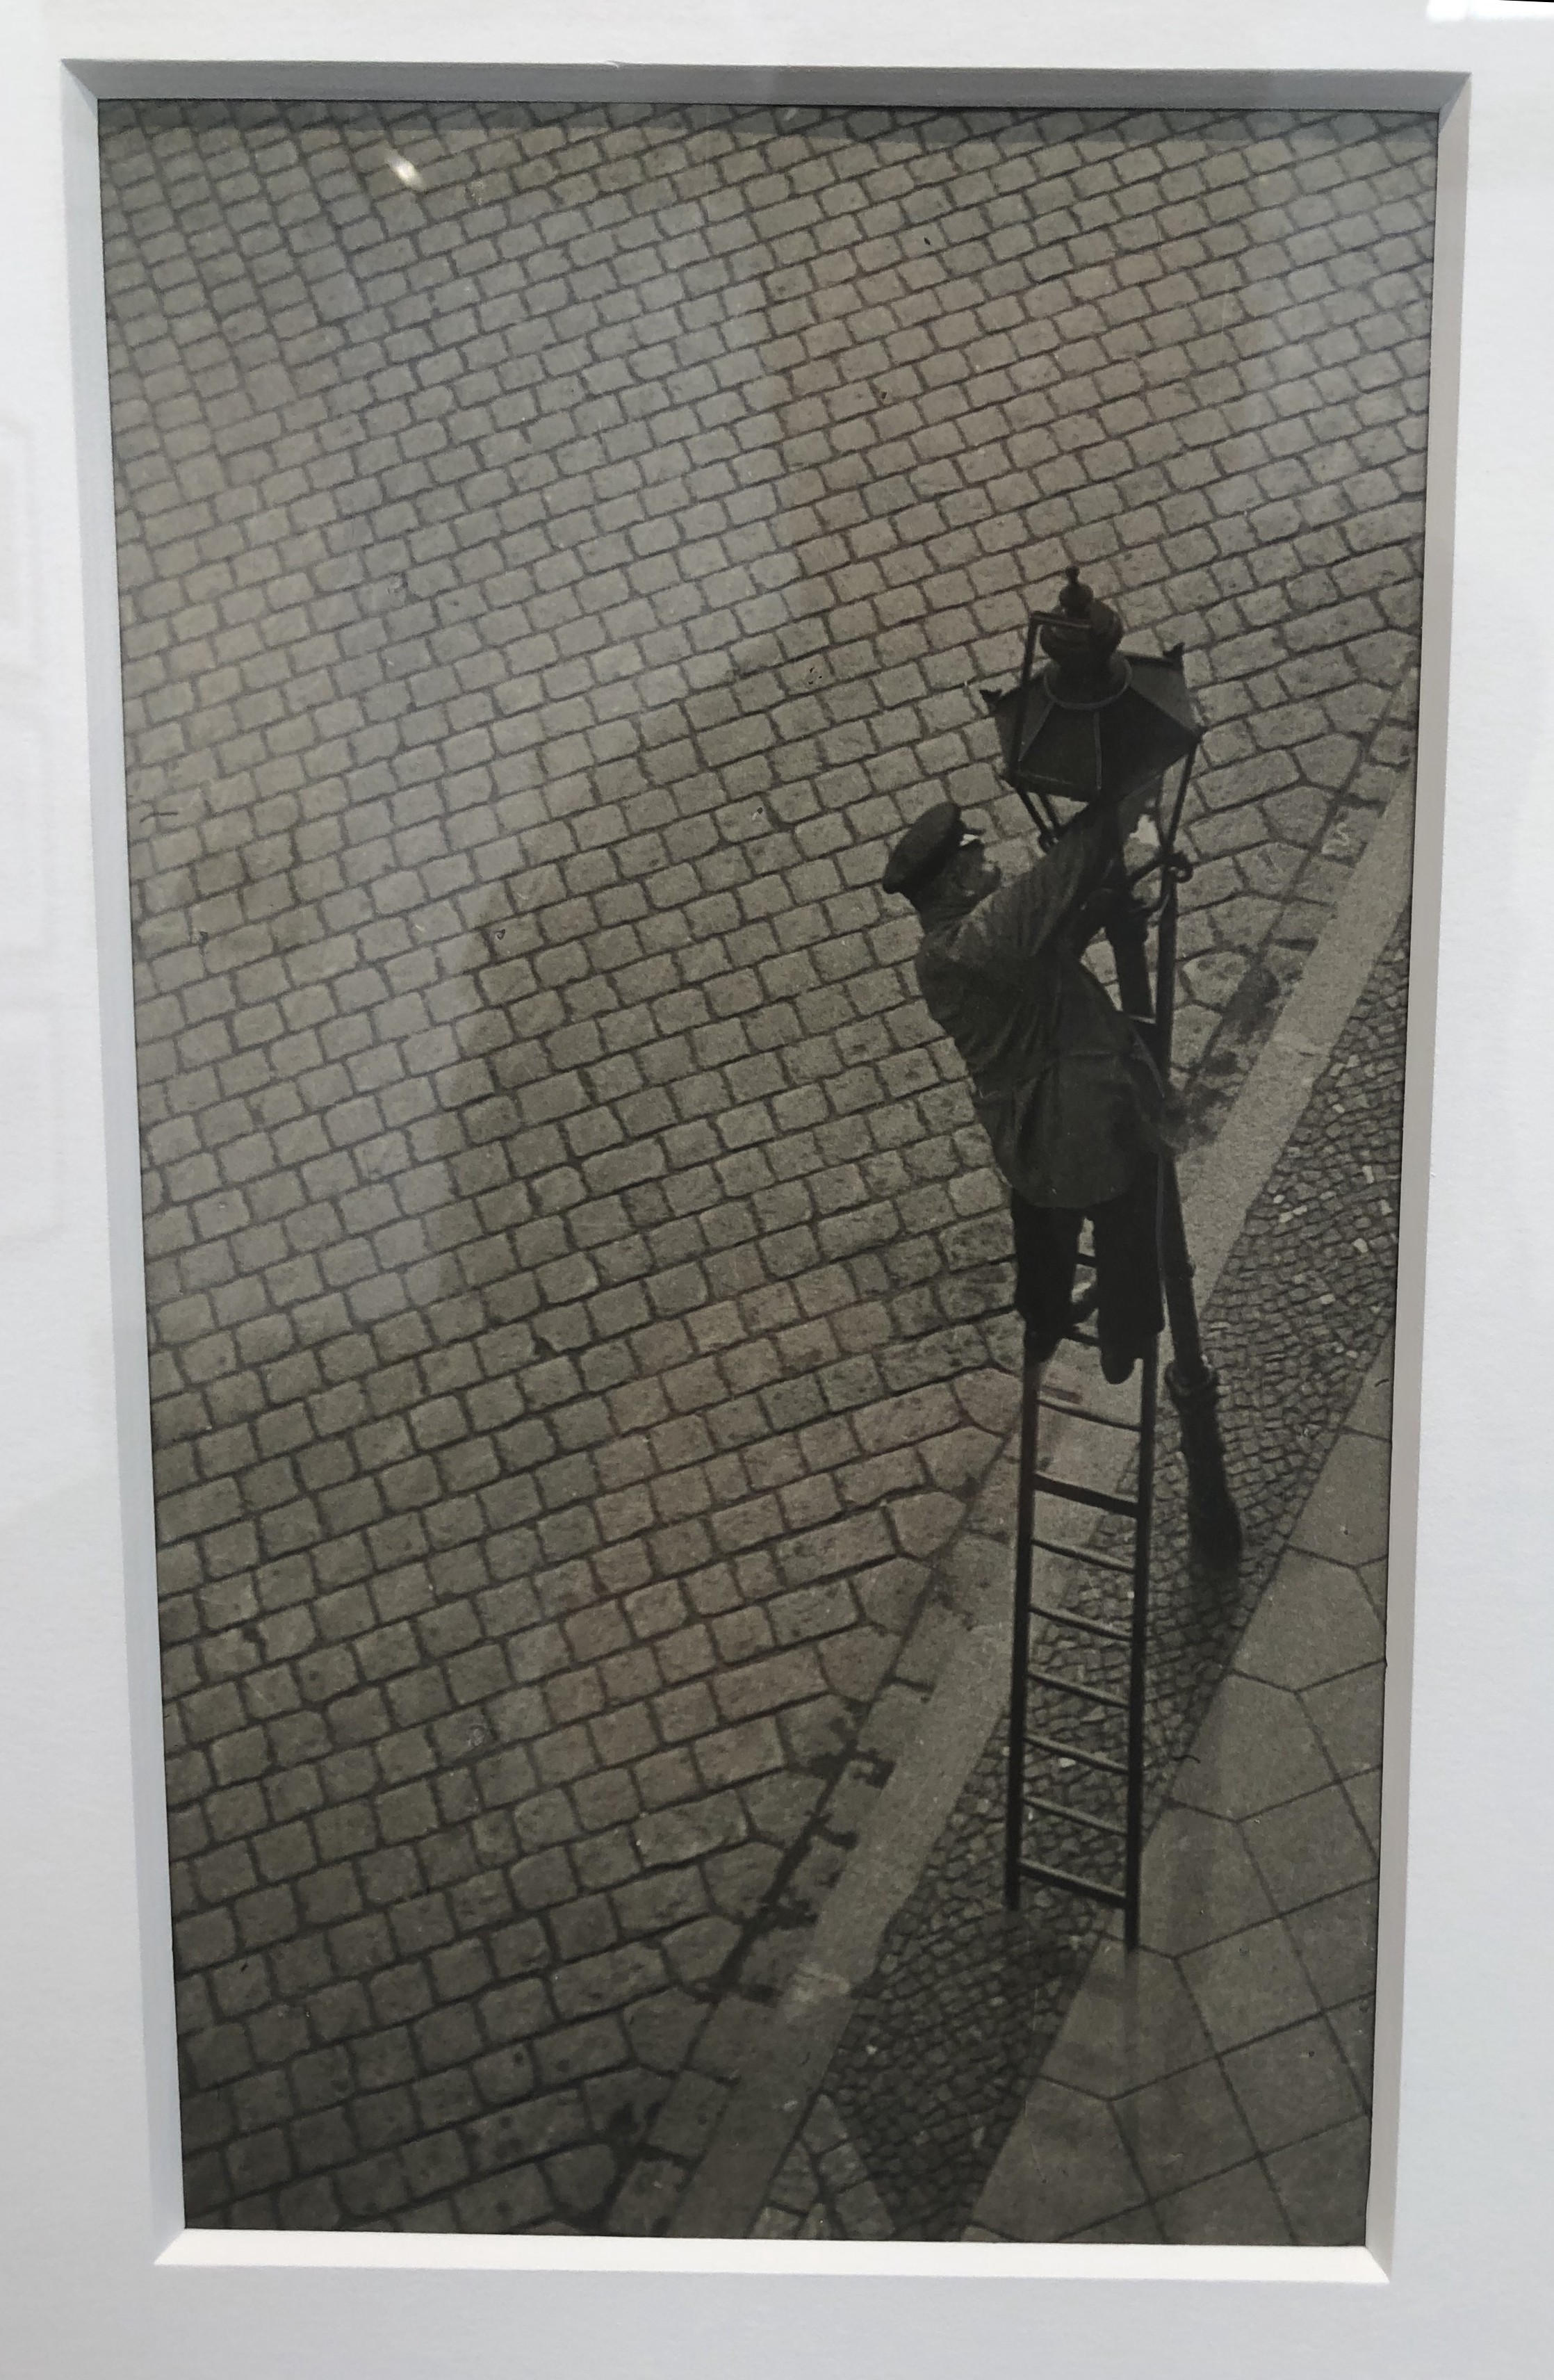 Black and white photograph of a man on a ladder working on a streetlamp.